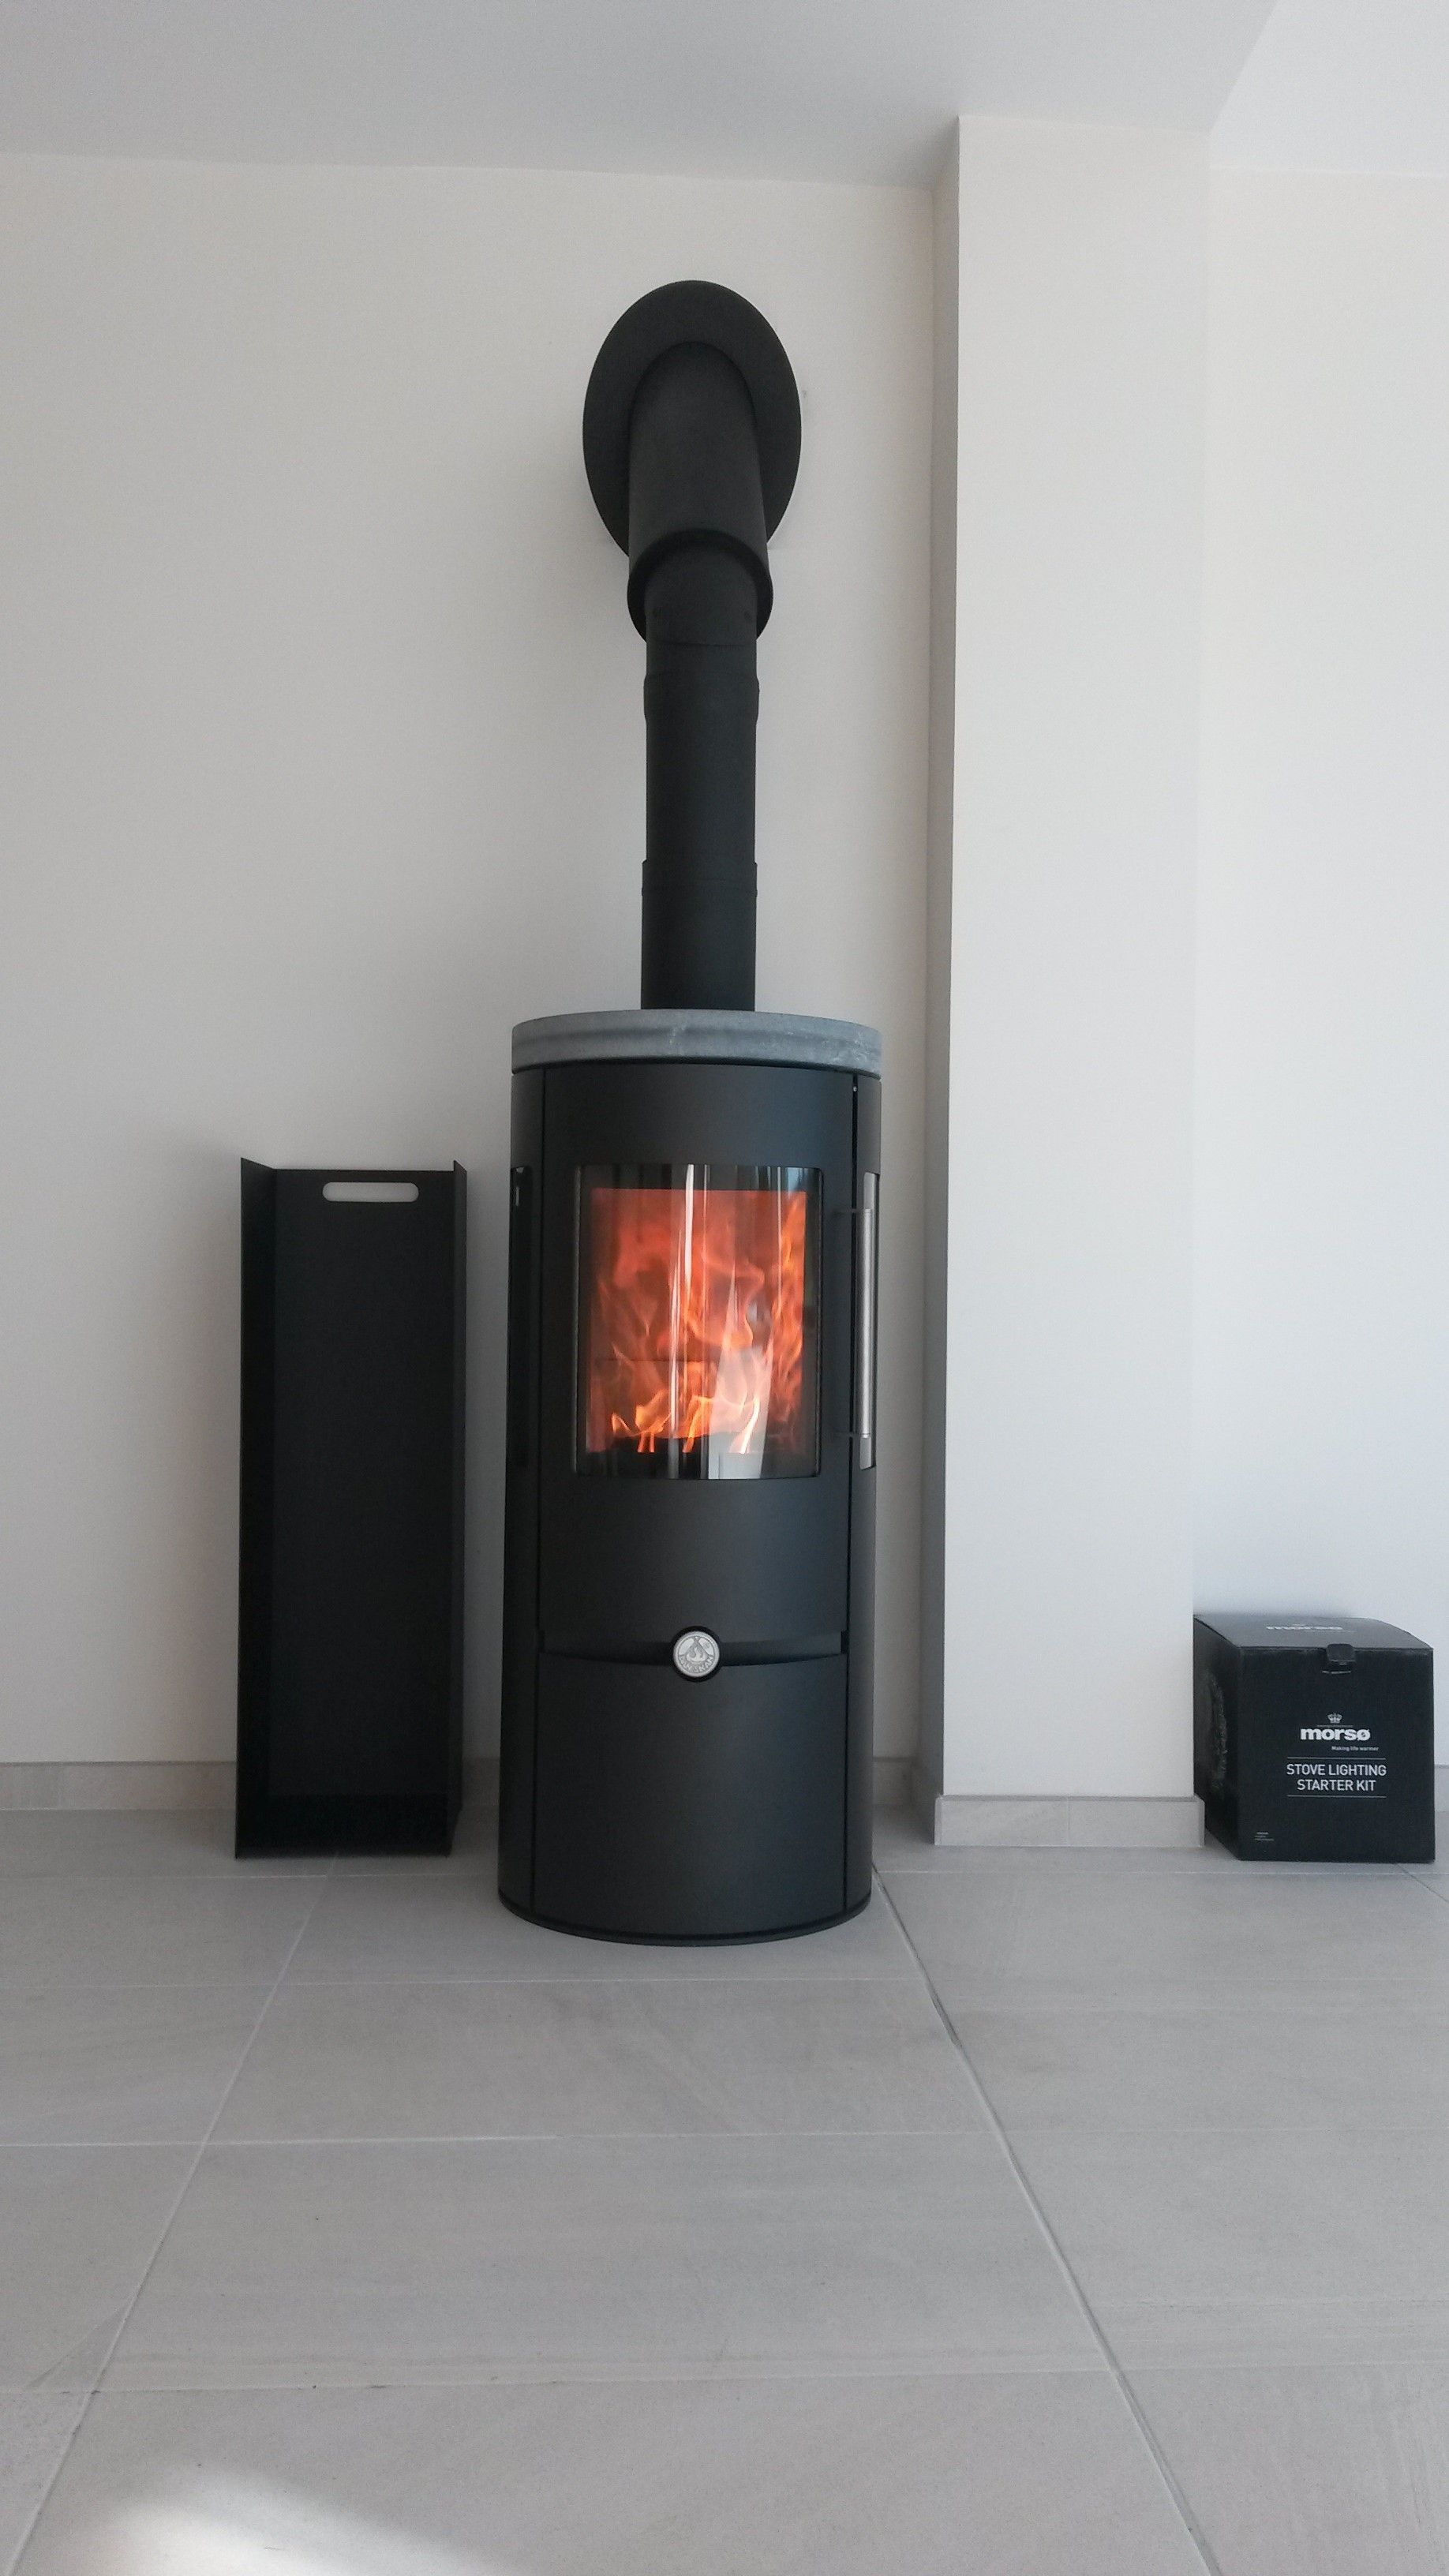 Dan Skan Ofen Dan Skan Logo Multi Fuel Stove Fireplace Living Room